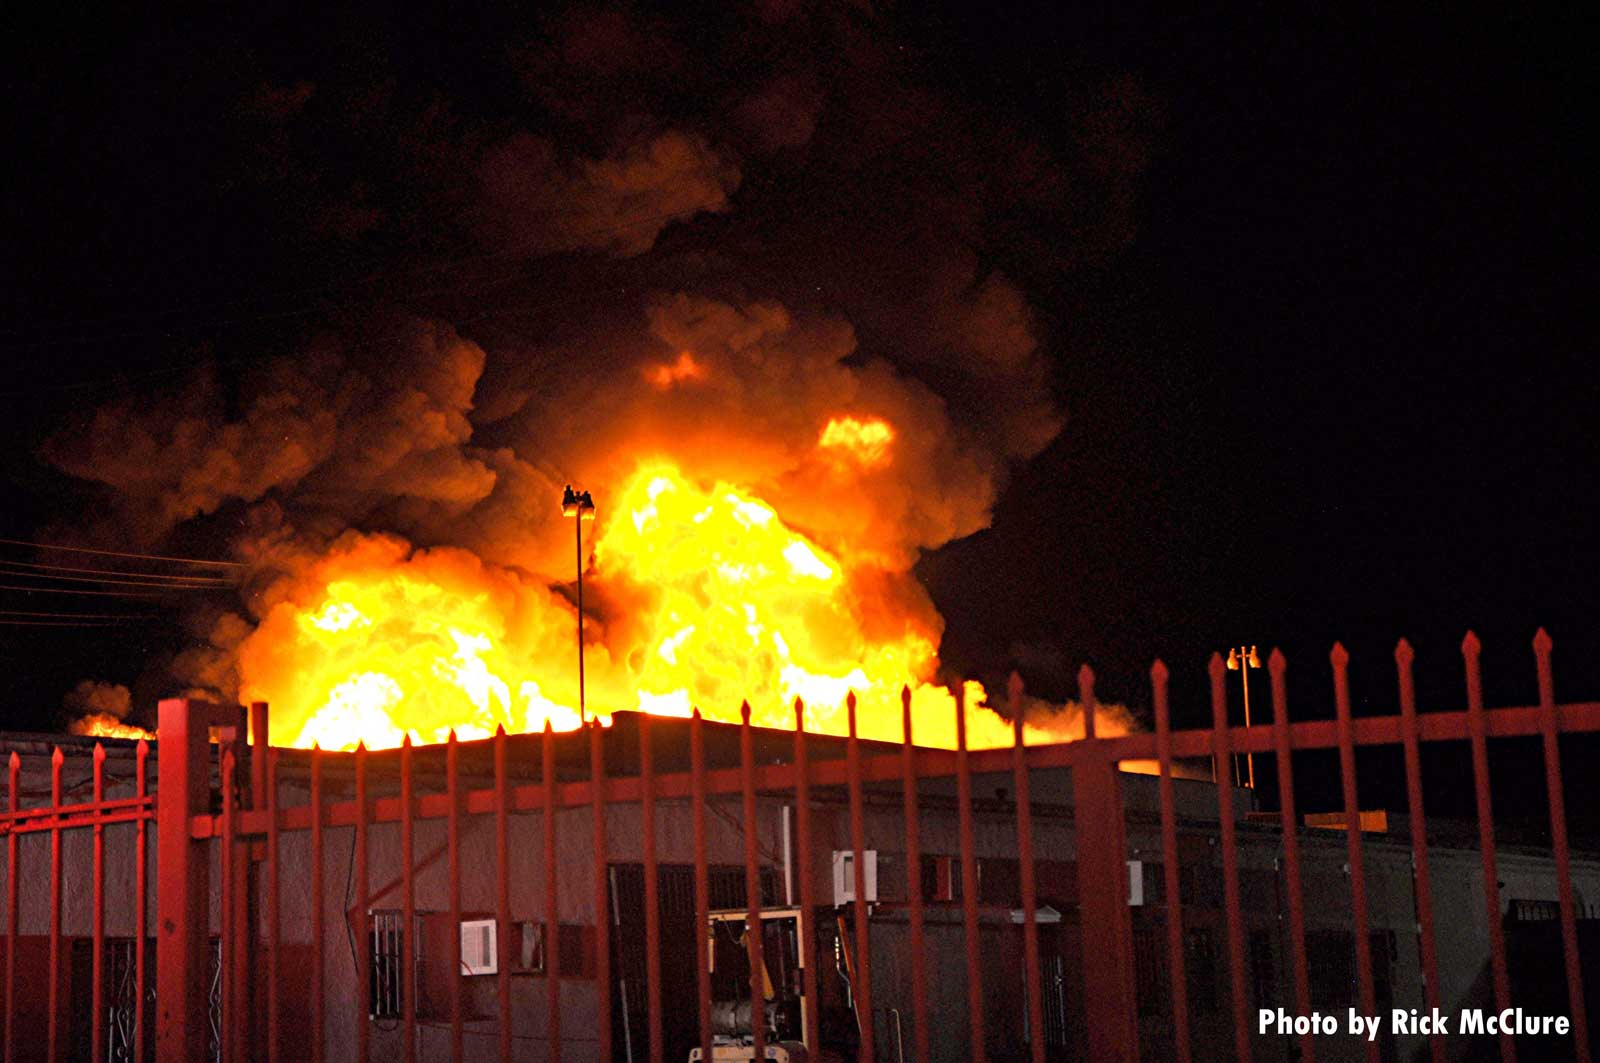 Burning commercial building